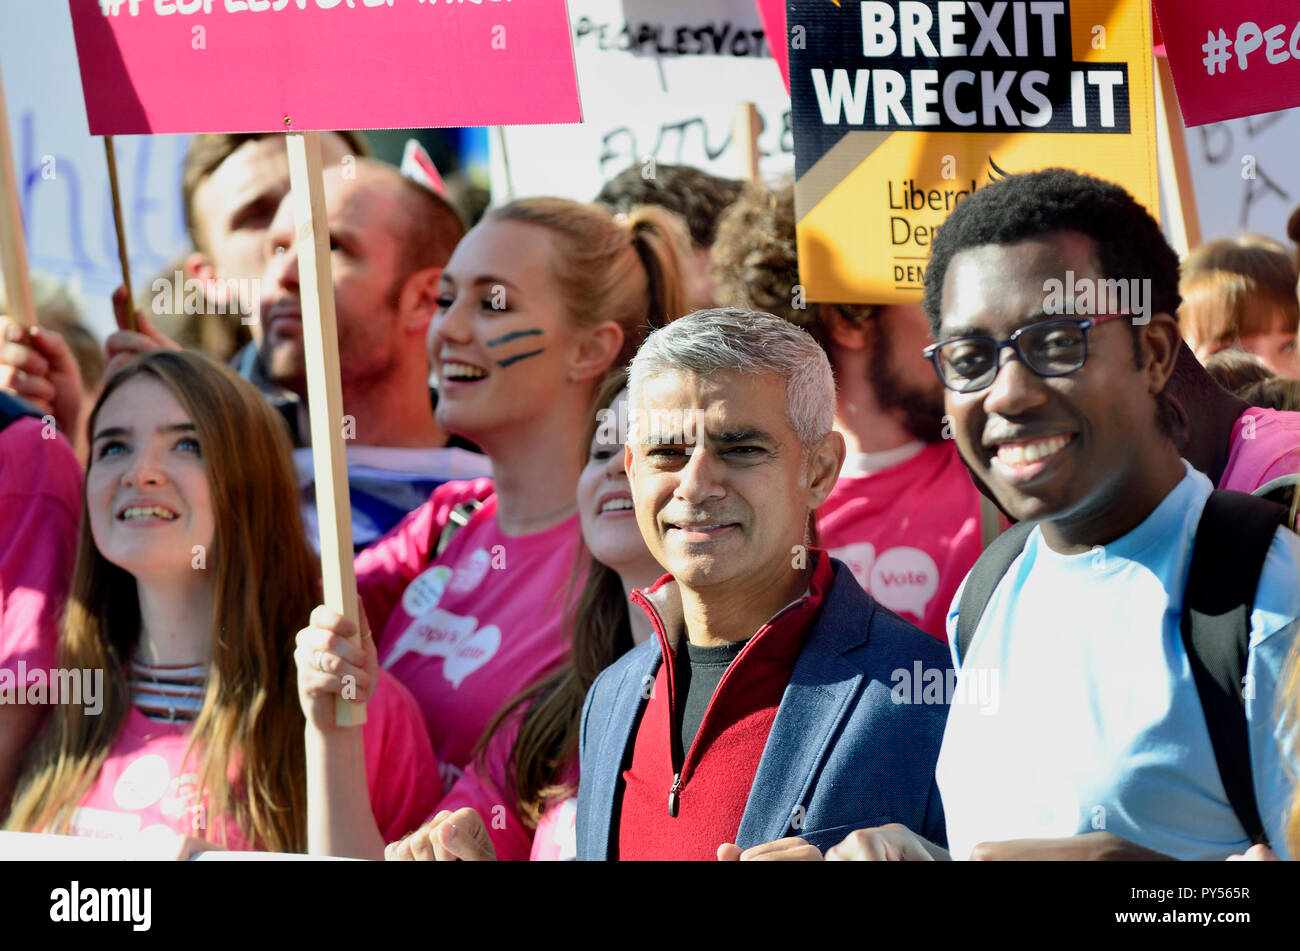 Sadiq Khan, Mayor of London, with Amatey Doku of the NUS at the start of the People's Vote March in support of a second Brexit referendum, London, 20t - Stock Image